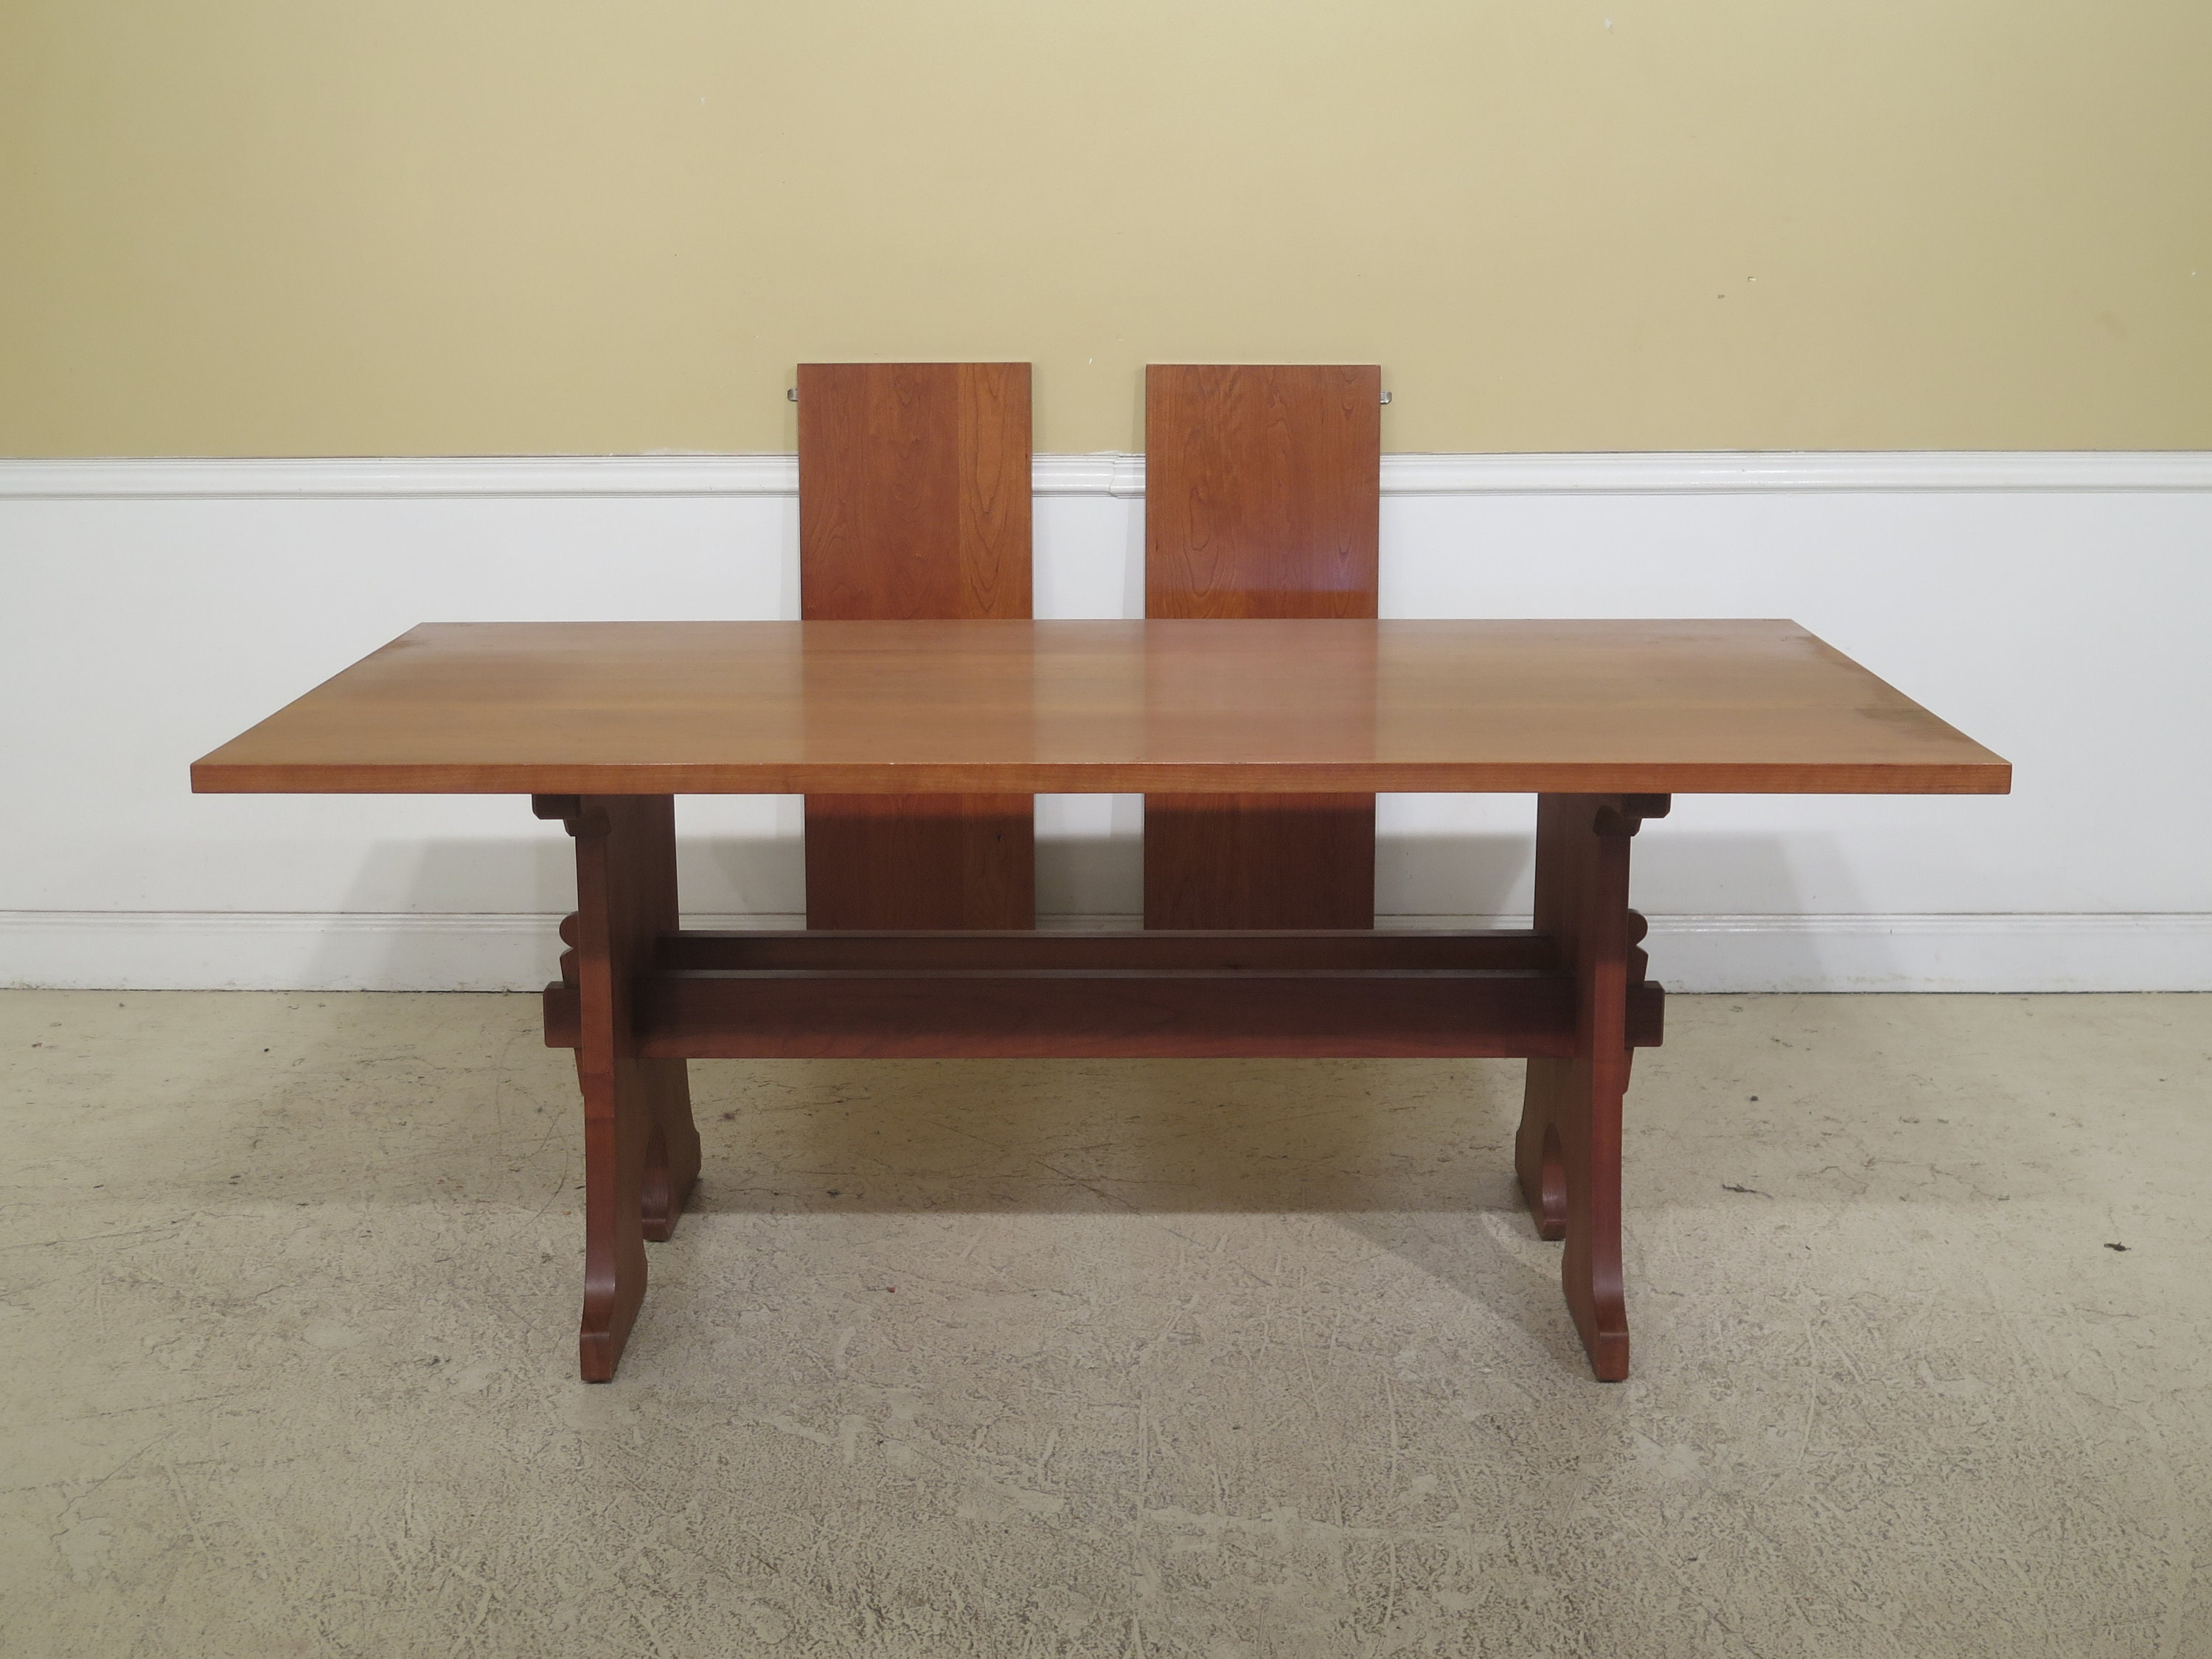 Wondrous F31010Ec Stickley Solid Cherry Mission Style Dining Room Table Lamtechconsult Wood Chair Design Ideas Lamtechconsultcom